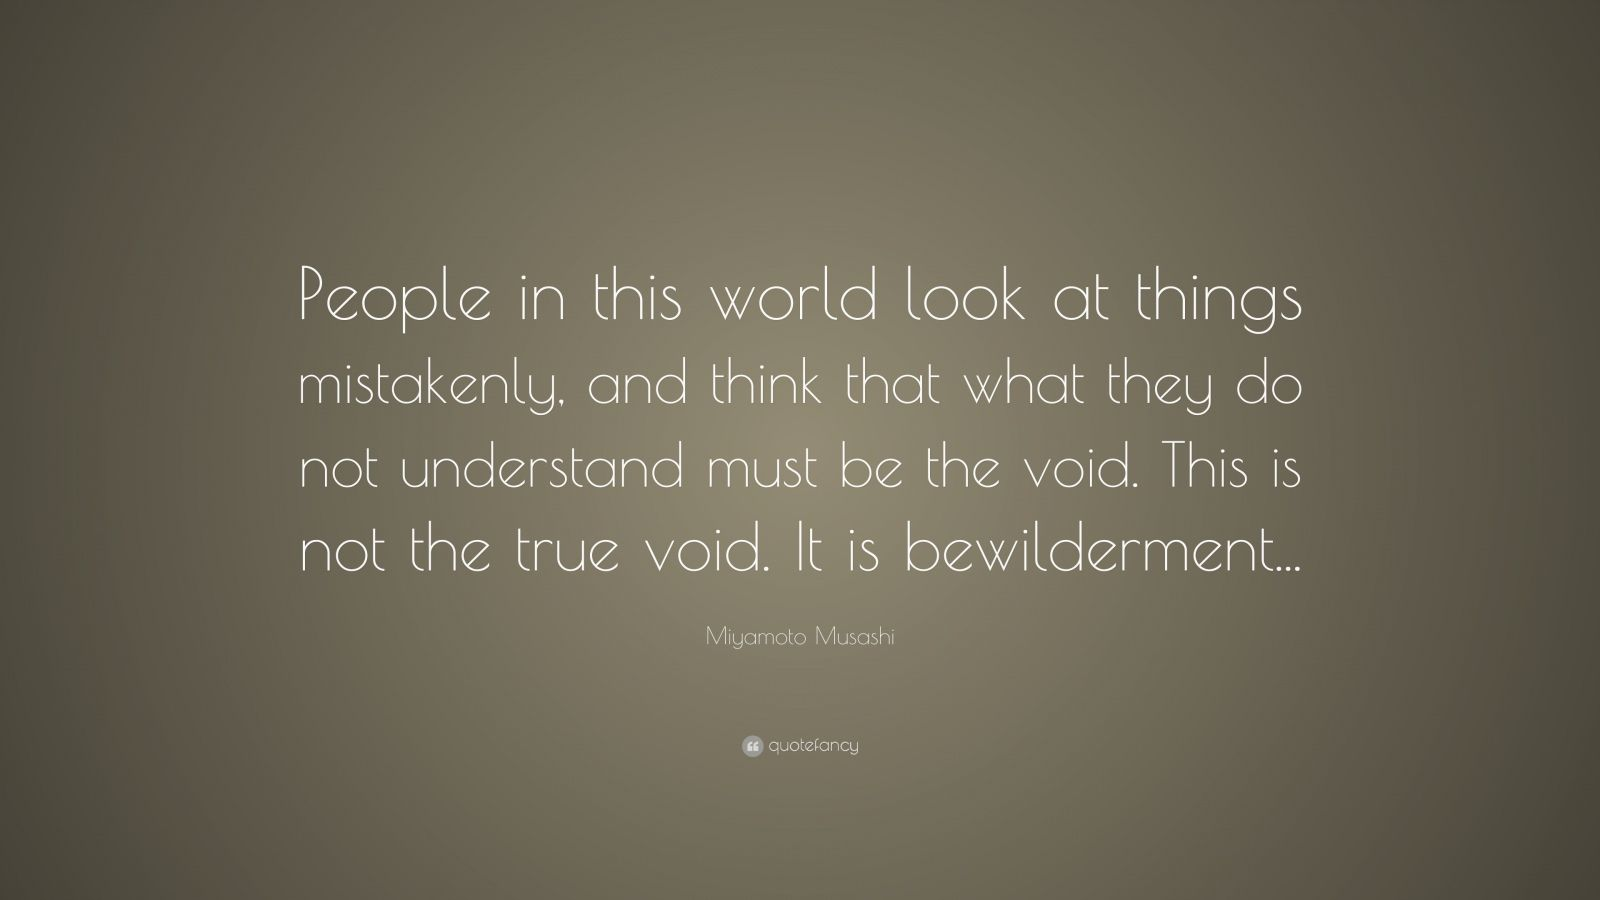 """Miyamoto Musashi Quote: """"People in this world look at things mistakenly, and think that what they do not understand must be the void. This is not the true void. It is bewilderment..."""""""